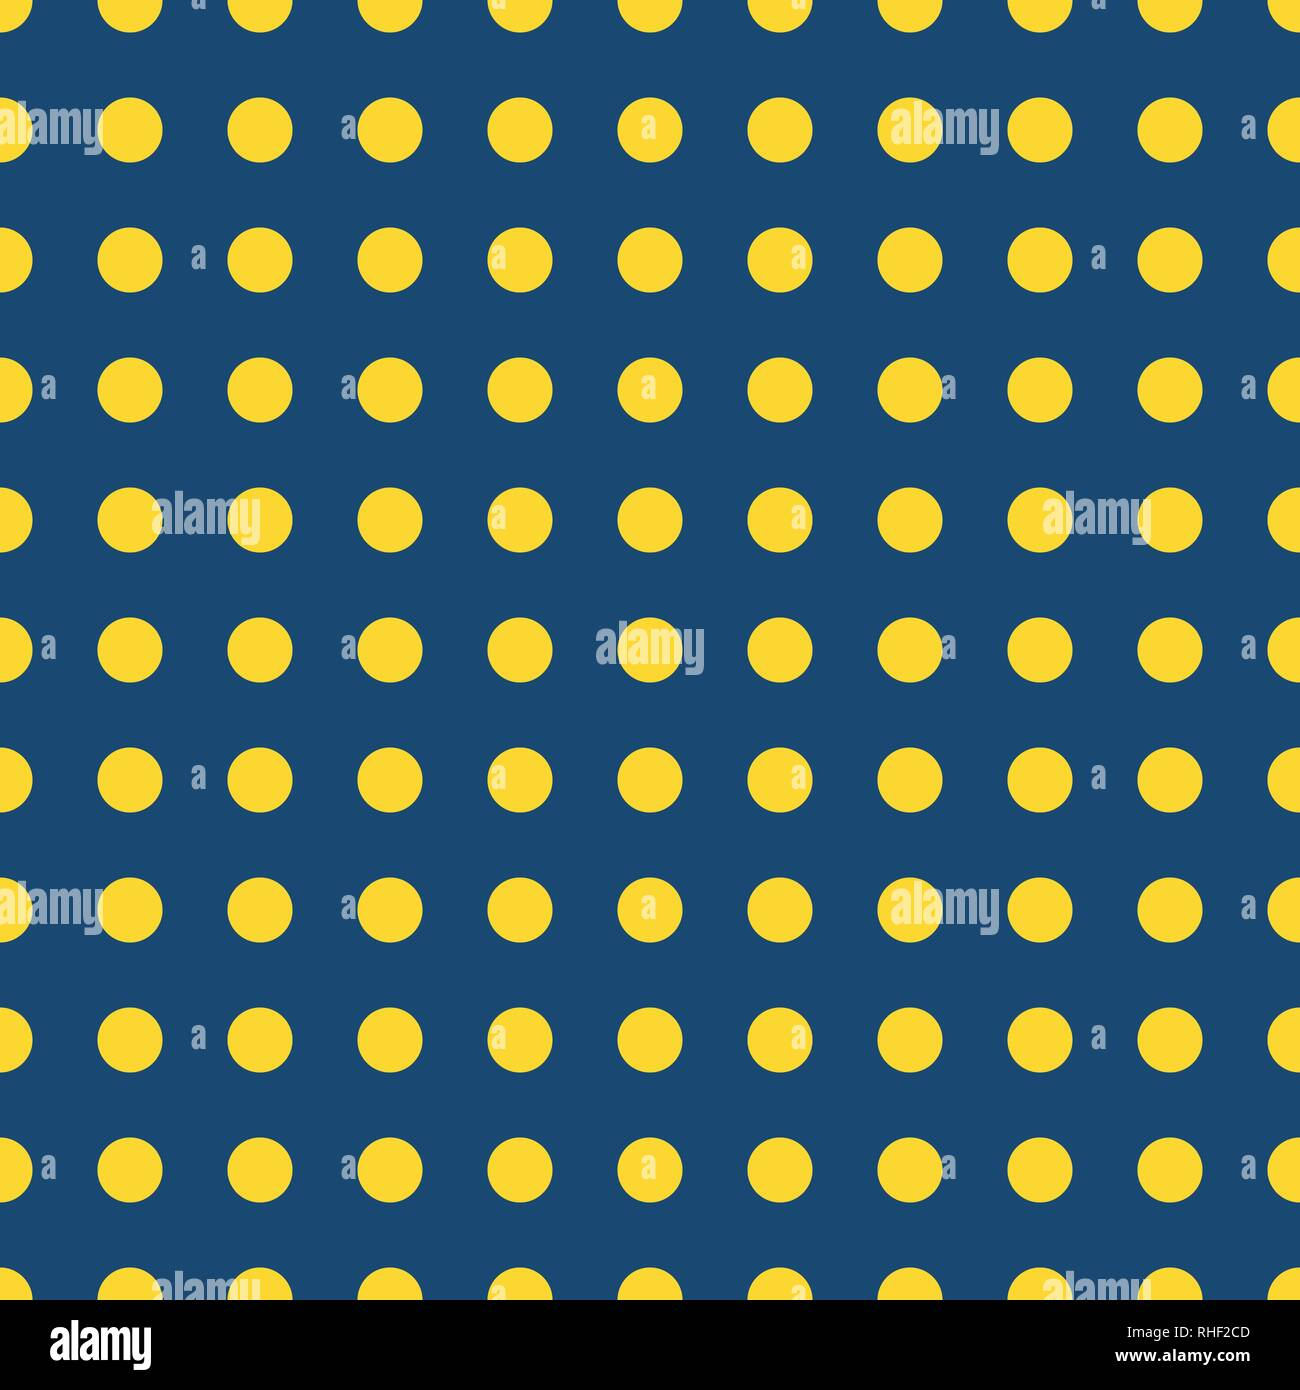 pics Blue Yellow Polka Dots https www alamy com blue vector seamless pattern with yellow polka dots vintage style background image234515133 html